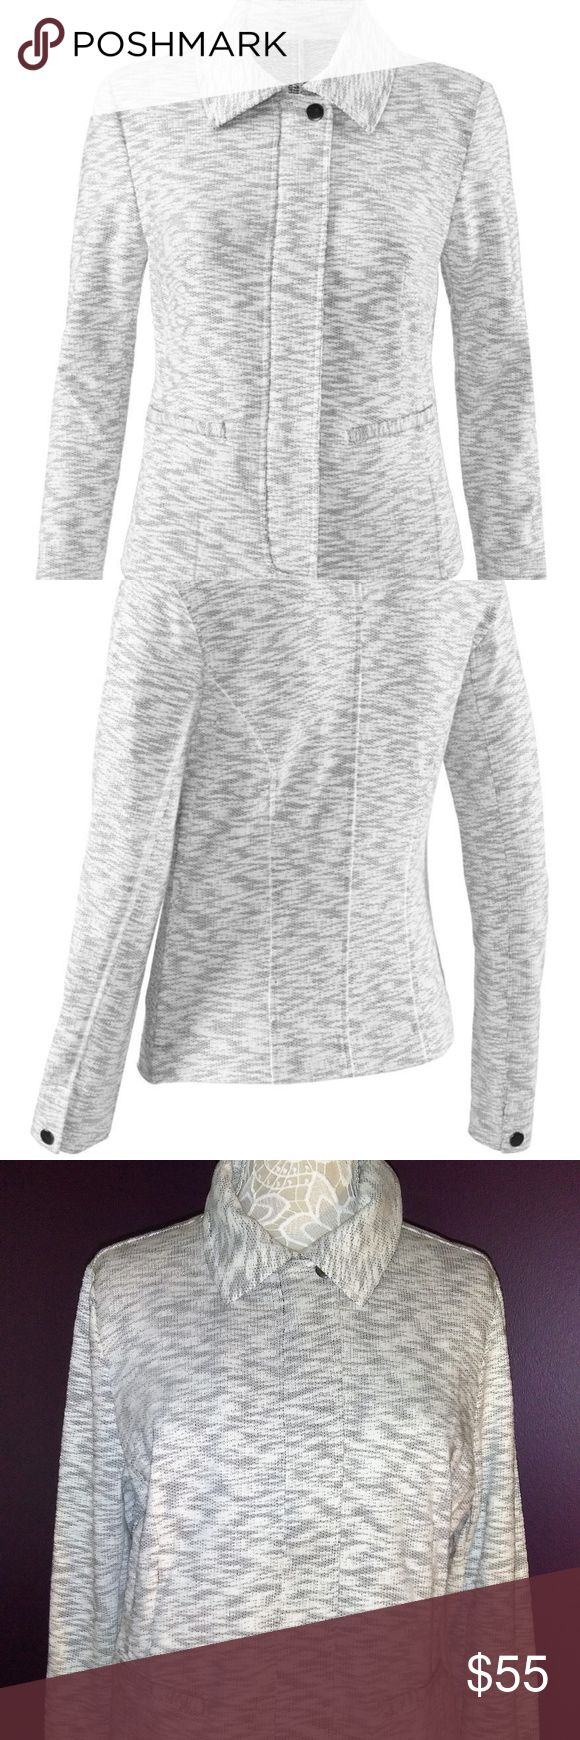 Darling cabi Spring 2016 Neo Jacket #5102 NWT  L Amazing style with this brand new (with tag attached) cabi Spring 2016 Neo Jacket # 5102 ♥ Classic must have jacket with zip front -2 pockets at waist and snap button at neck and cuffs. Dress up for a night on the town or dress down with jeans or shorts. Super cozy!   Fabric: 71%  Polyester / 29% cotton  Garment Care: Wash by hand - cold water - lay flat to dry   ♥ Please visit my closet again soon - lots of excellent deals on minty condition…